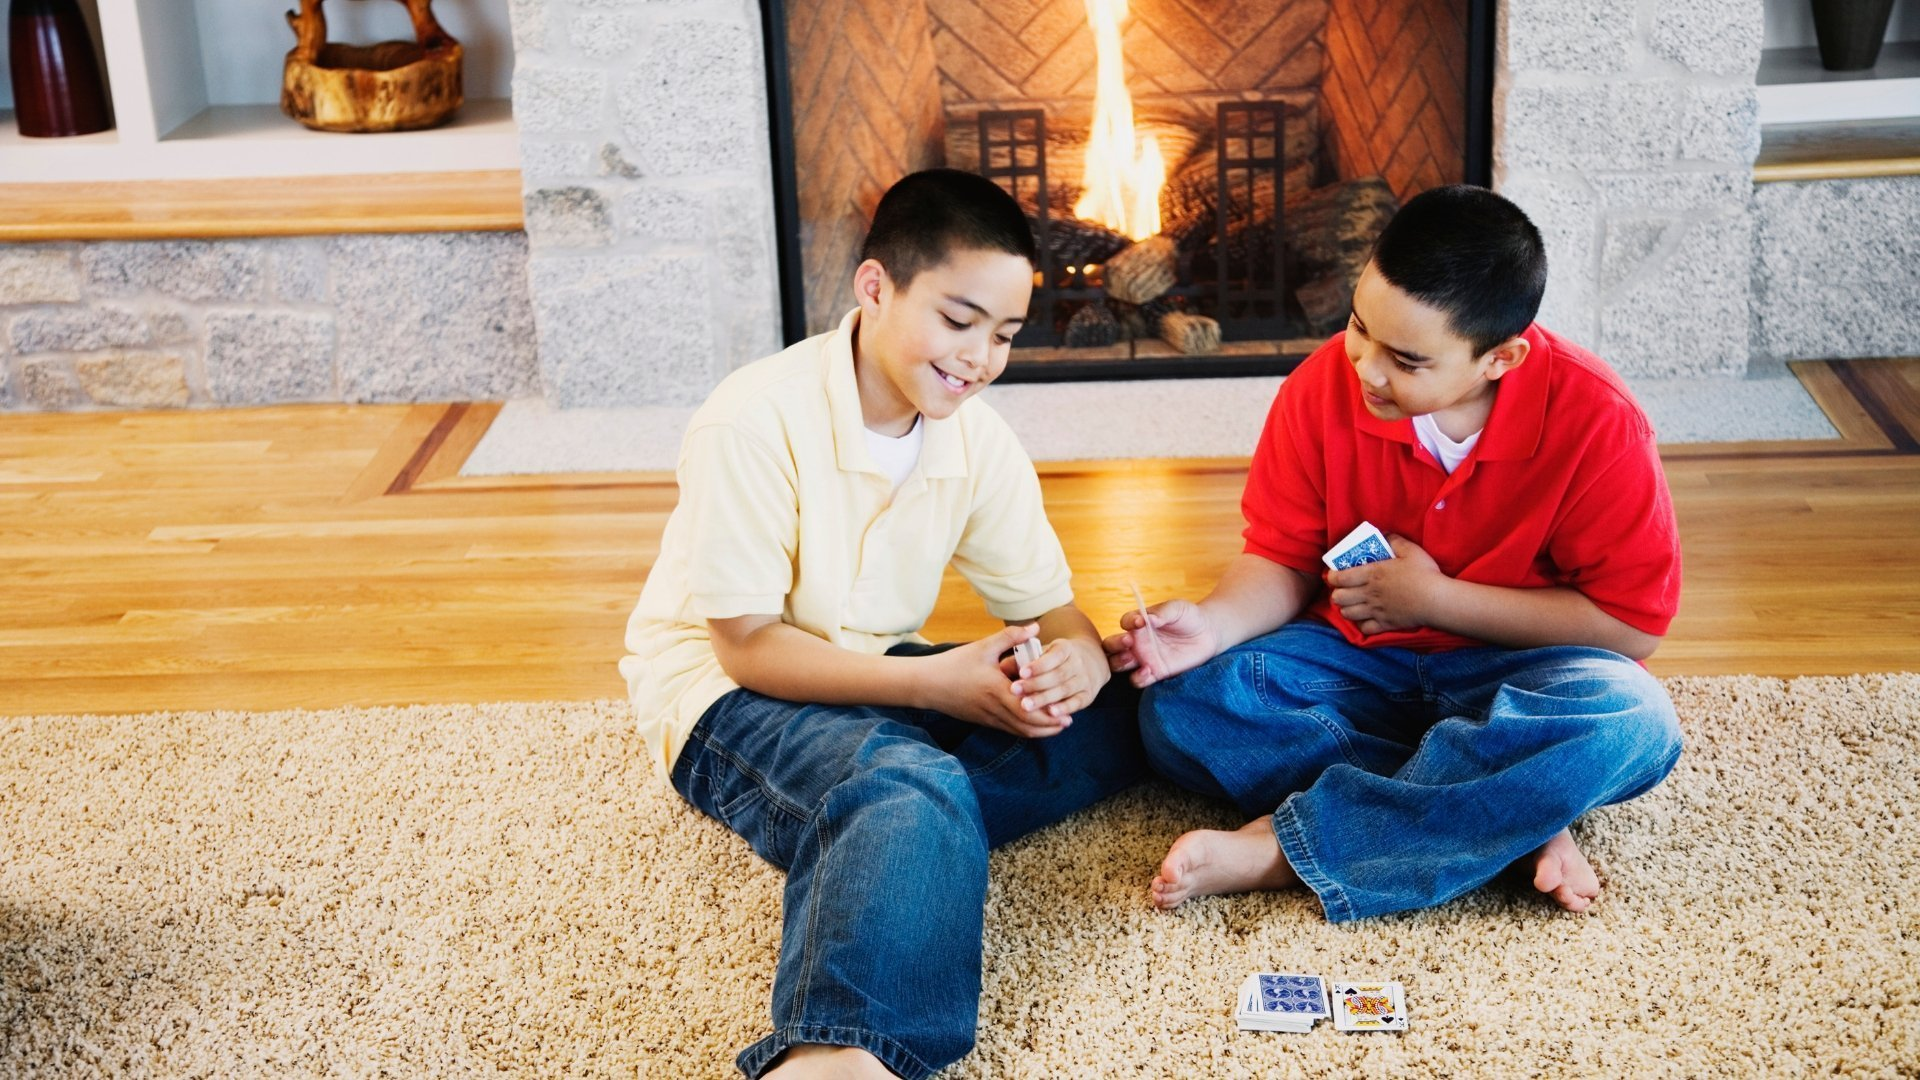 Boys Sitting in Front of Fire Playing Cards